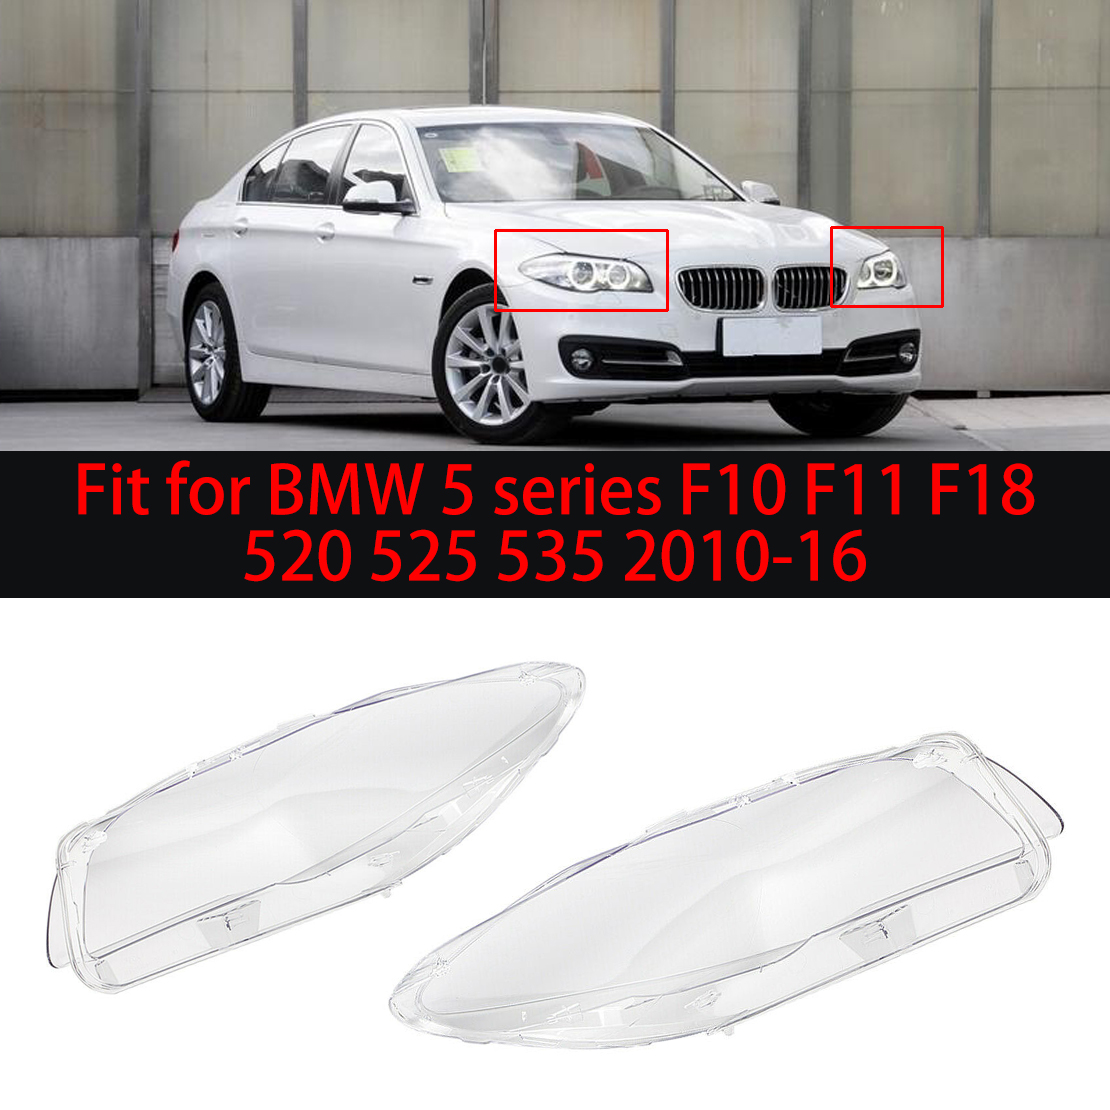 Car Headlight Glass Lampshade Front Lamp Covers Headlamp Lens Fit For BMW F10 LCI F18 528i 530i 535i 2010-2014 Color : Left Car Headlight Lampshade